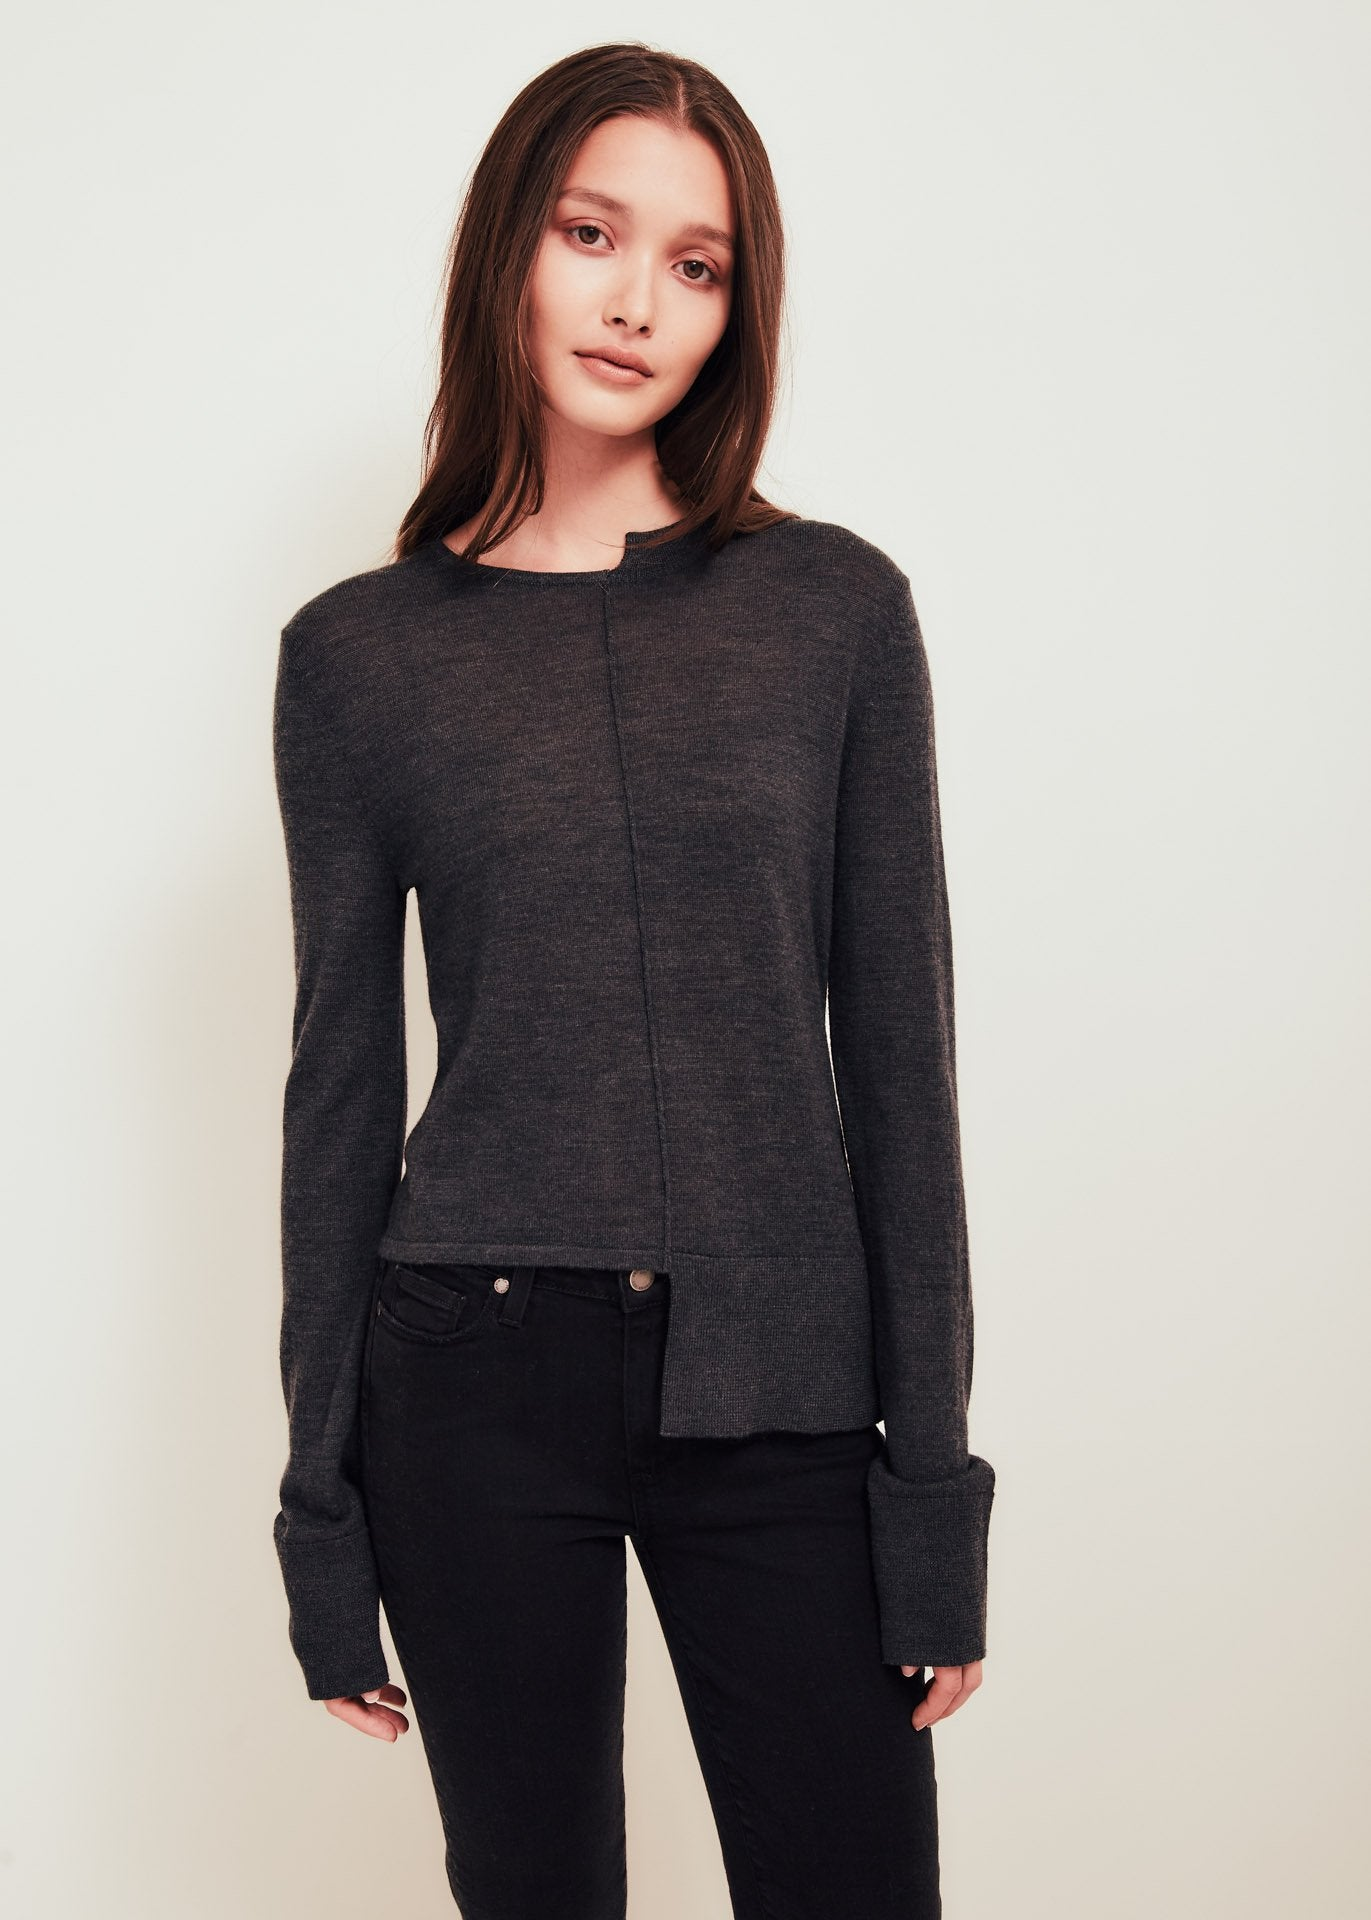 Grey Fine Merino Wool Crew Neck Sweater - Stephie